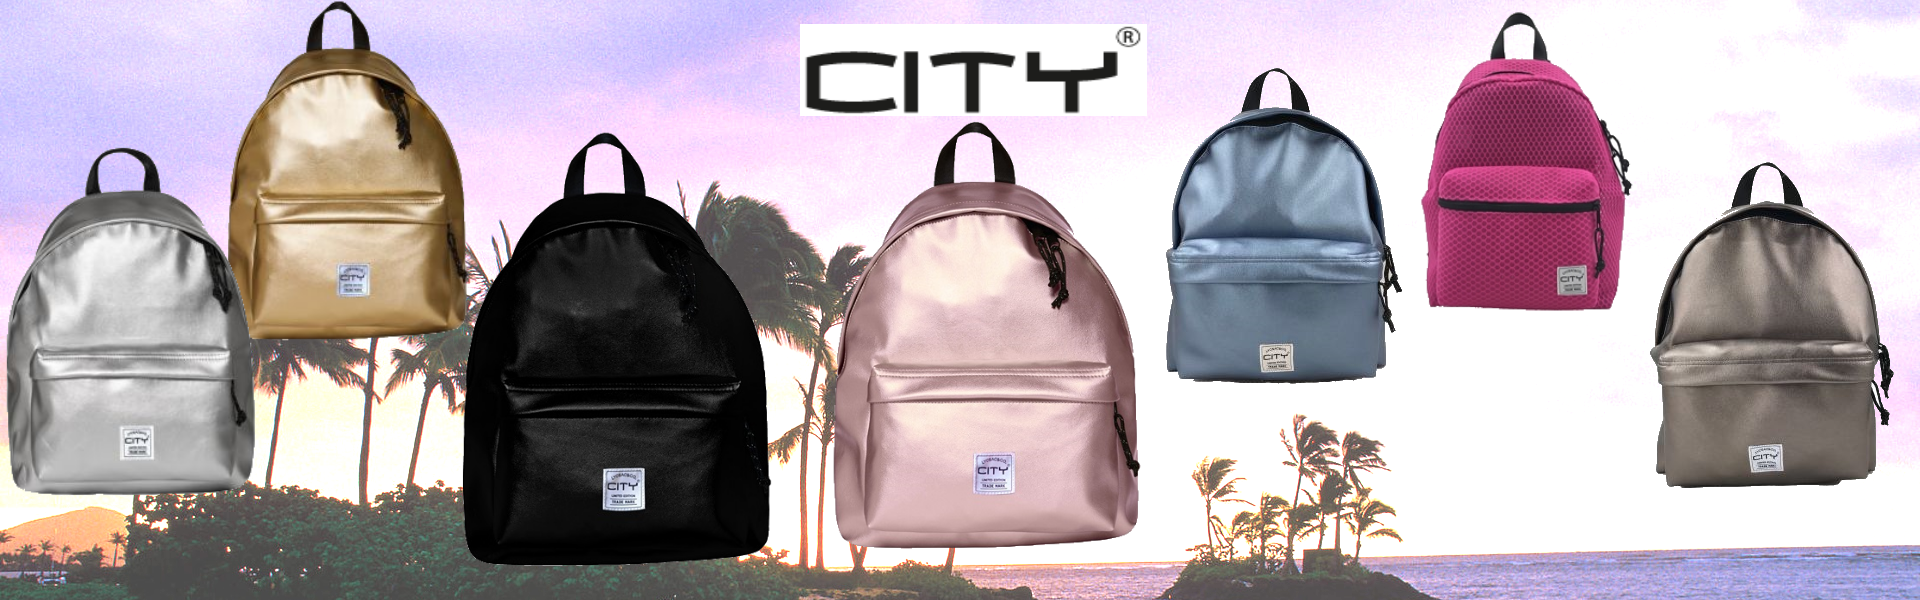 City Limited Edition